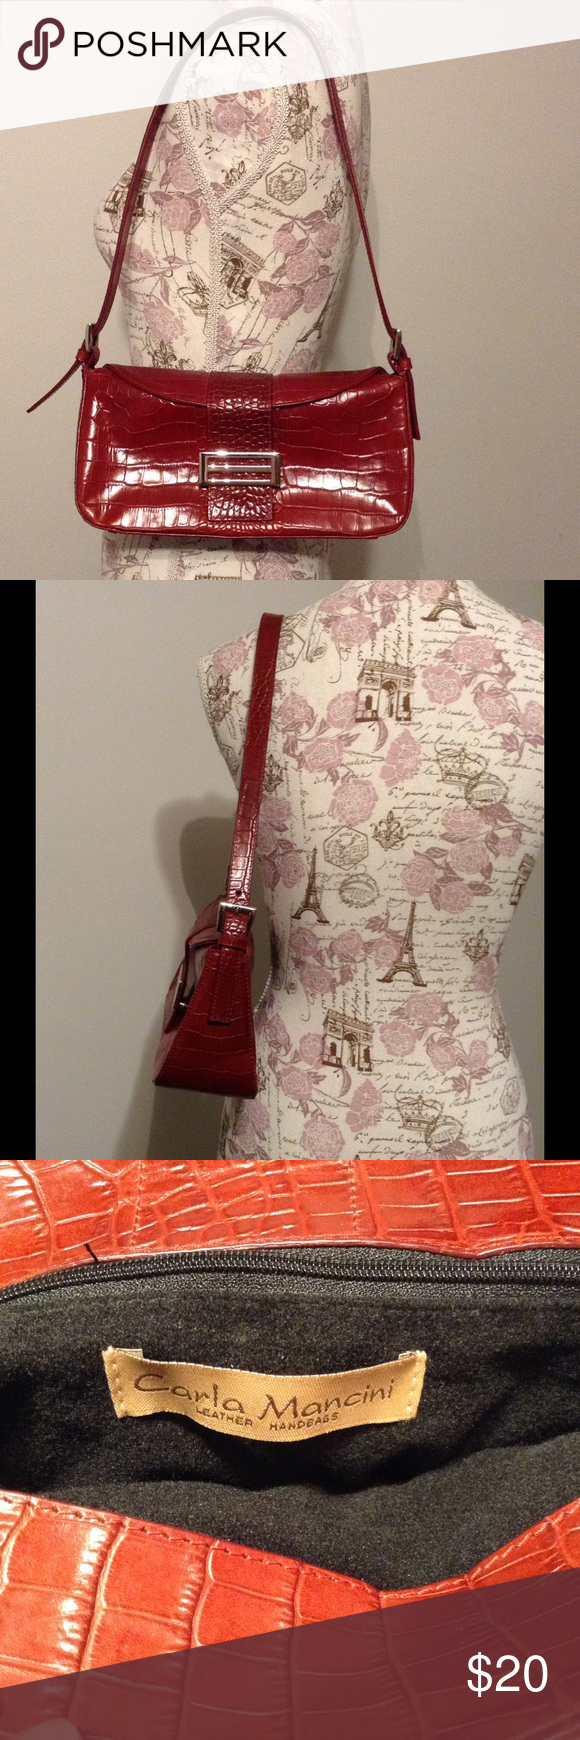 Red Carla Mancini leather shoulder bag In great condition aside from white marks on strap. Carla Mancini Bags Shoulder Bags